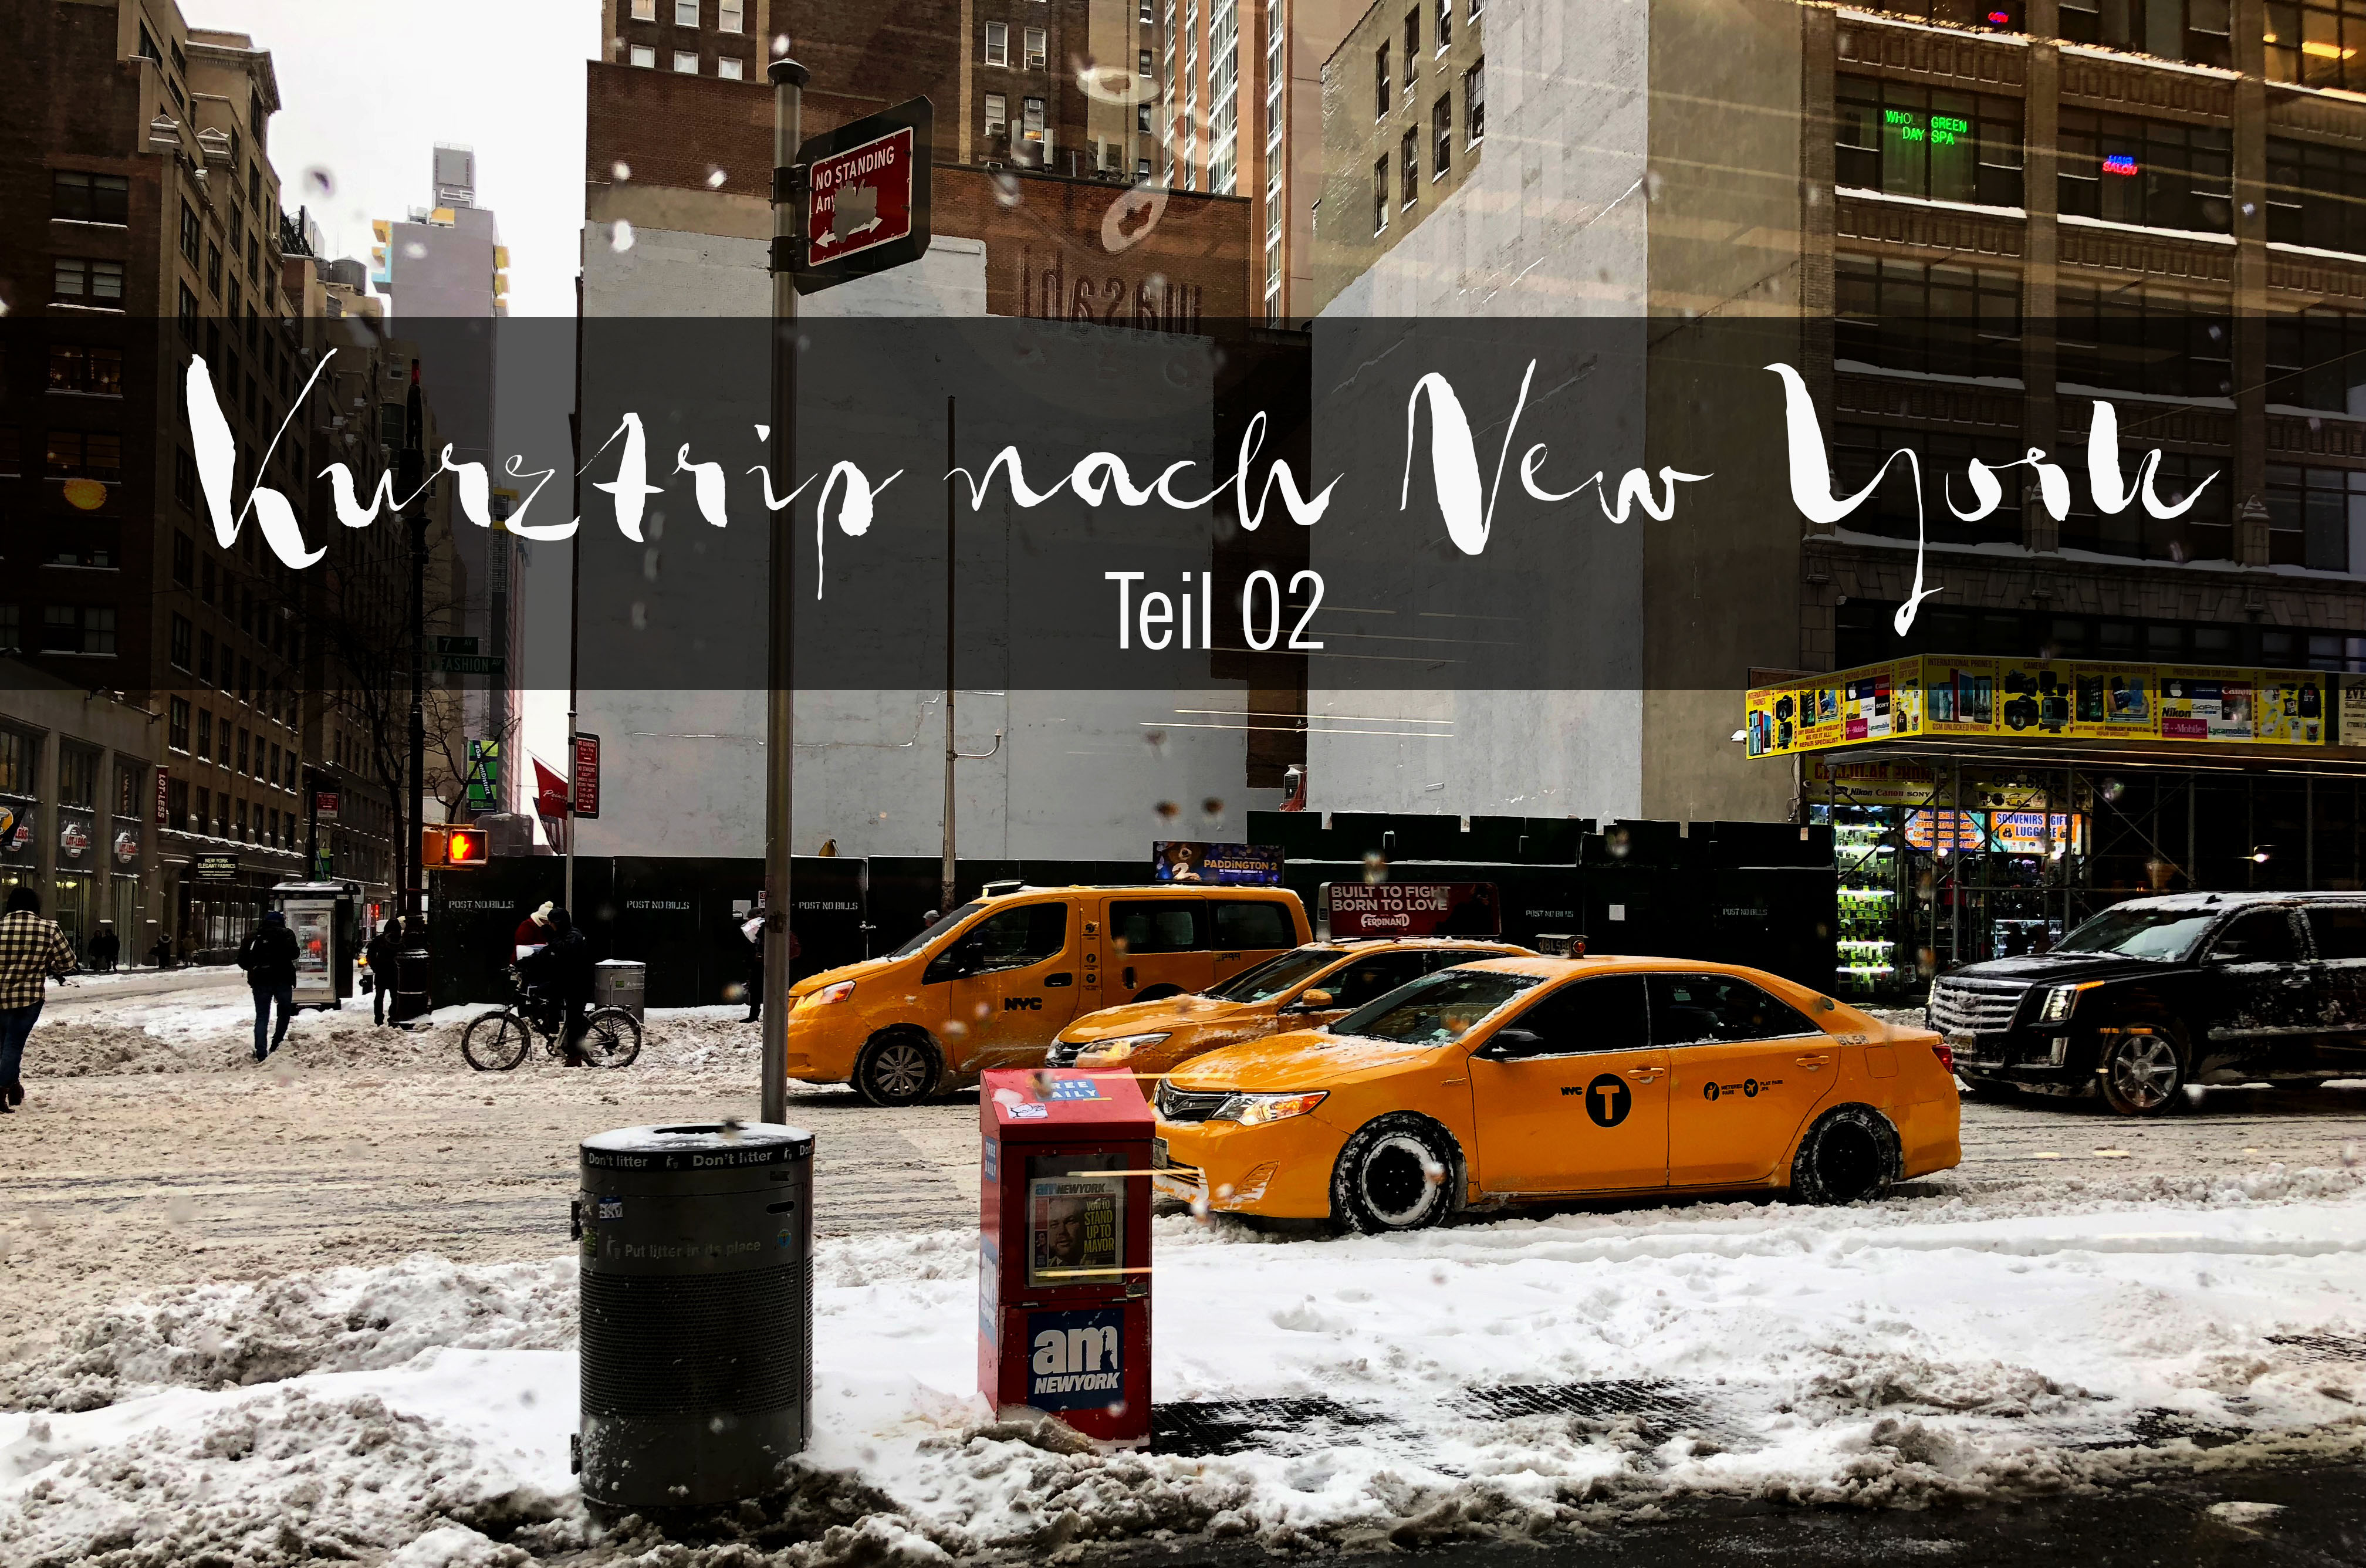 Kurztrip nach New York im Winter – Teil 02 // Traveling to New York in Winter Part 1 by http://babyrockmyday.com/kurztrip-new-york-teil-02/